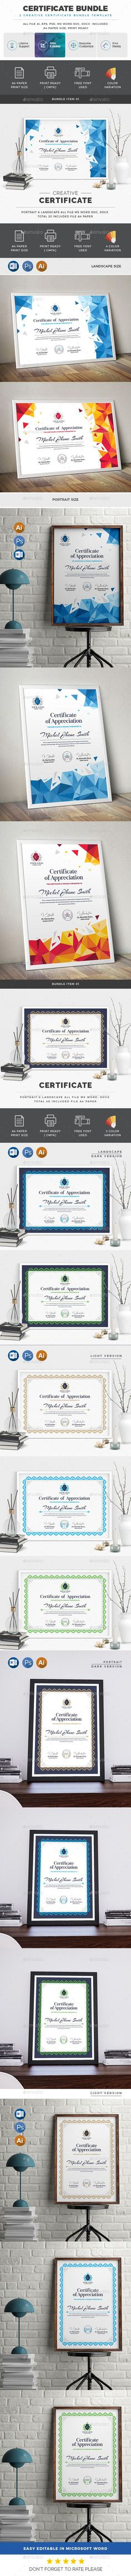 Buy Best Sale Certificate Bundle 2 in 1 by generousart on GraphicRiver. Included Bundle Features of Certificate Template Color Versions Paper Size With Bleeds Quick and ea. Stencil Templates, Label Templates, Best Templates, Newsletter Templates, Print Templates, Design Templates, Gift Certificate Template, Certificate Design, Gift Certificates